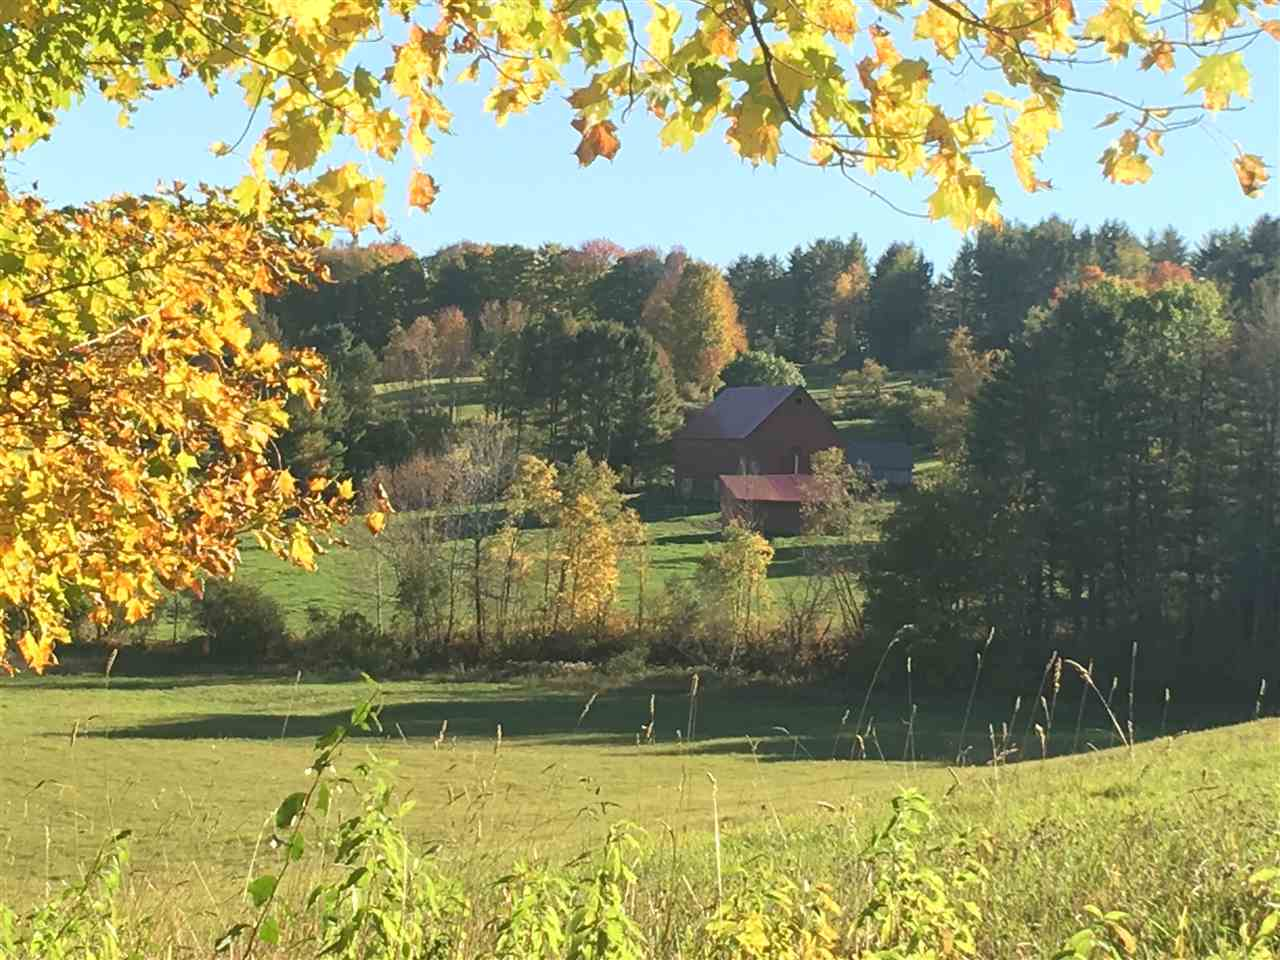 Vt connecticut river valley vermont land acres for sale for Vermont country homes